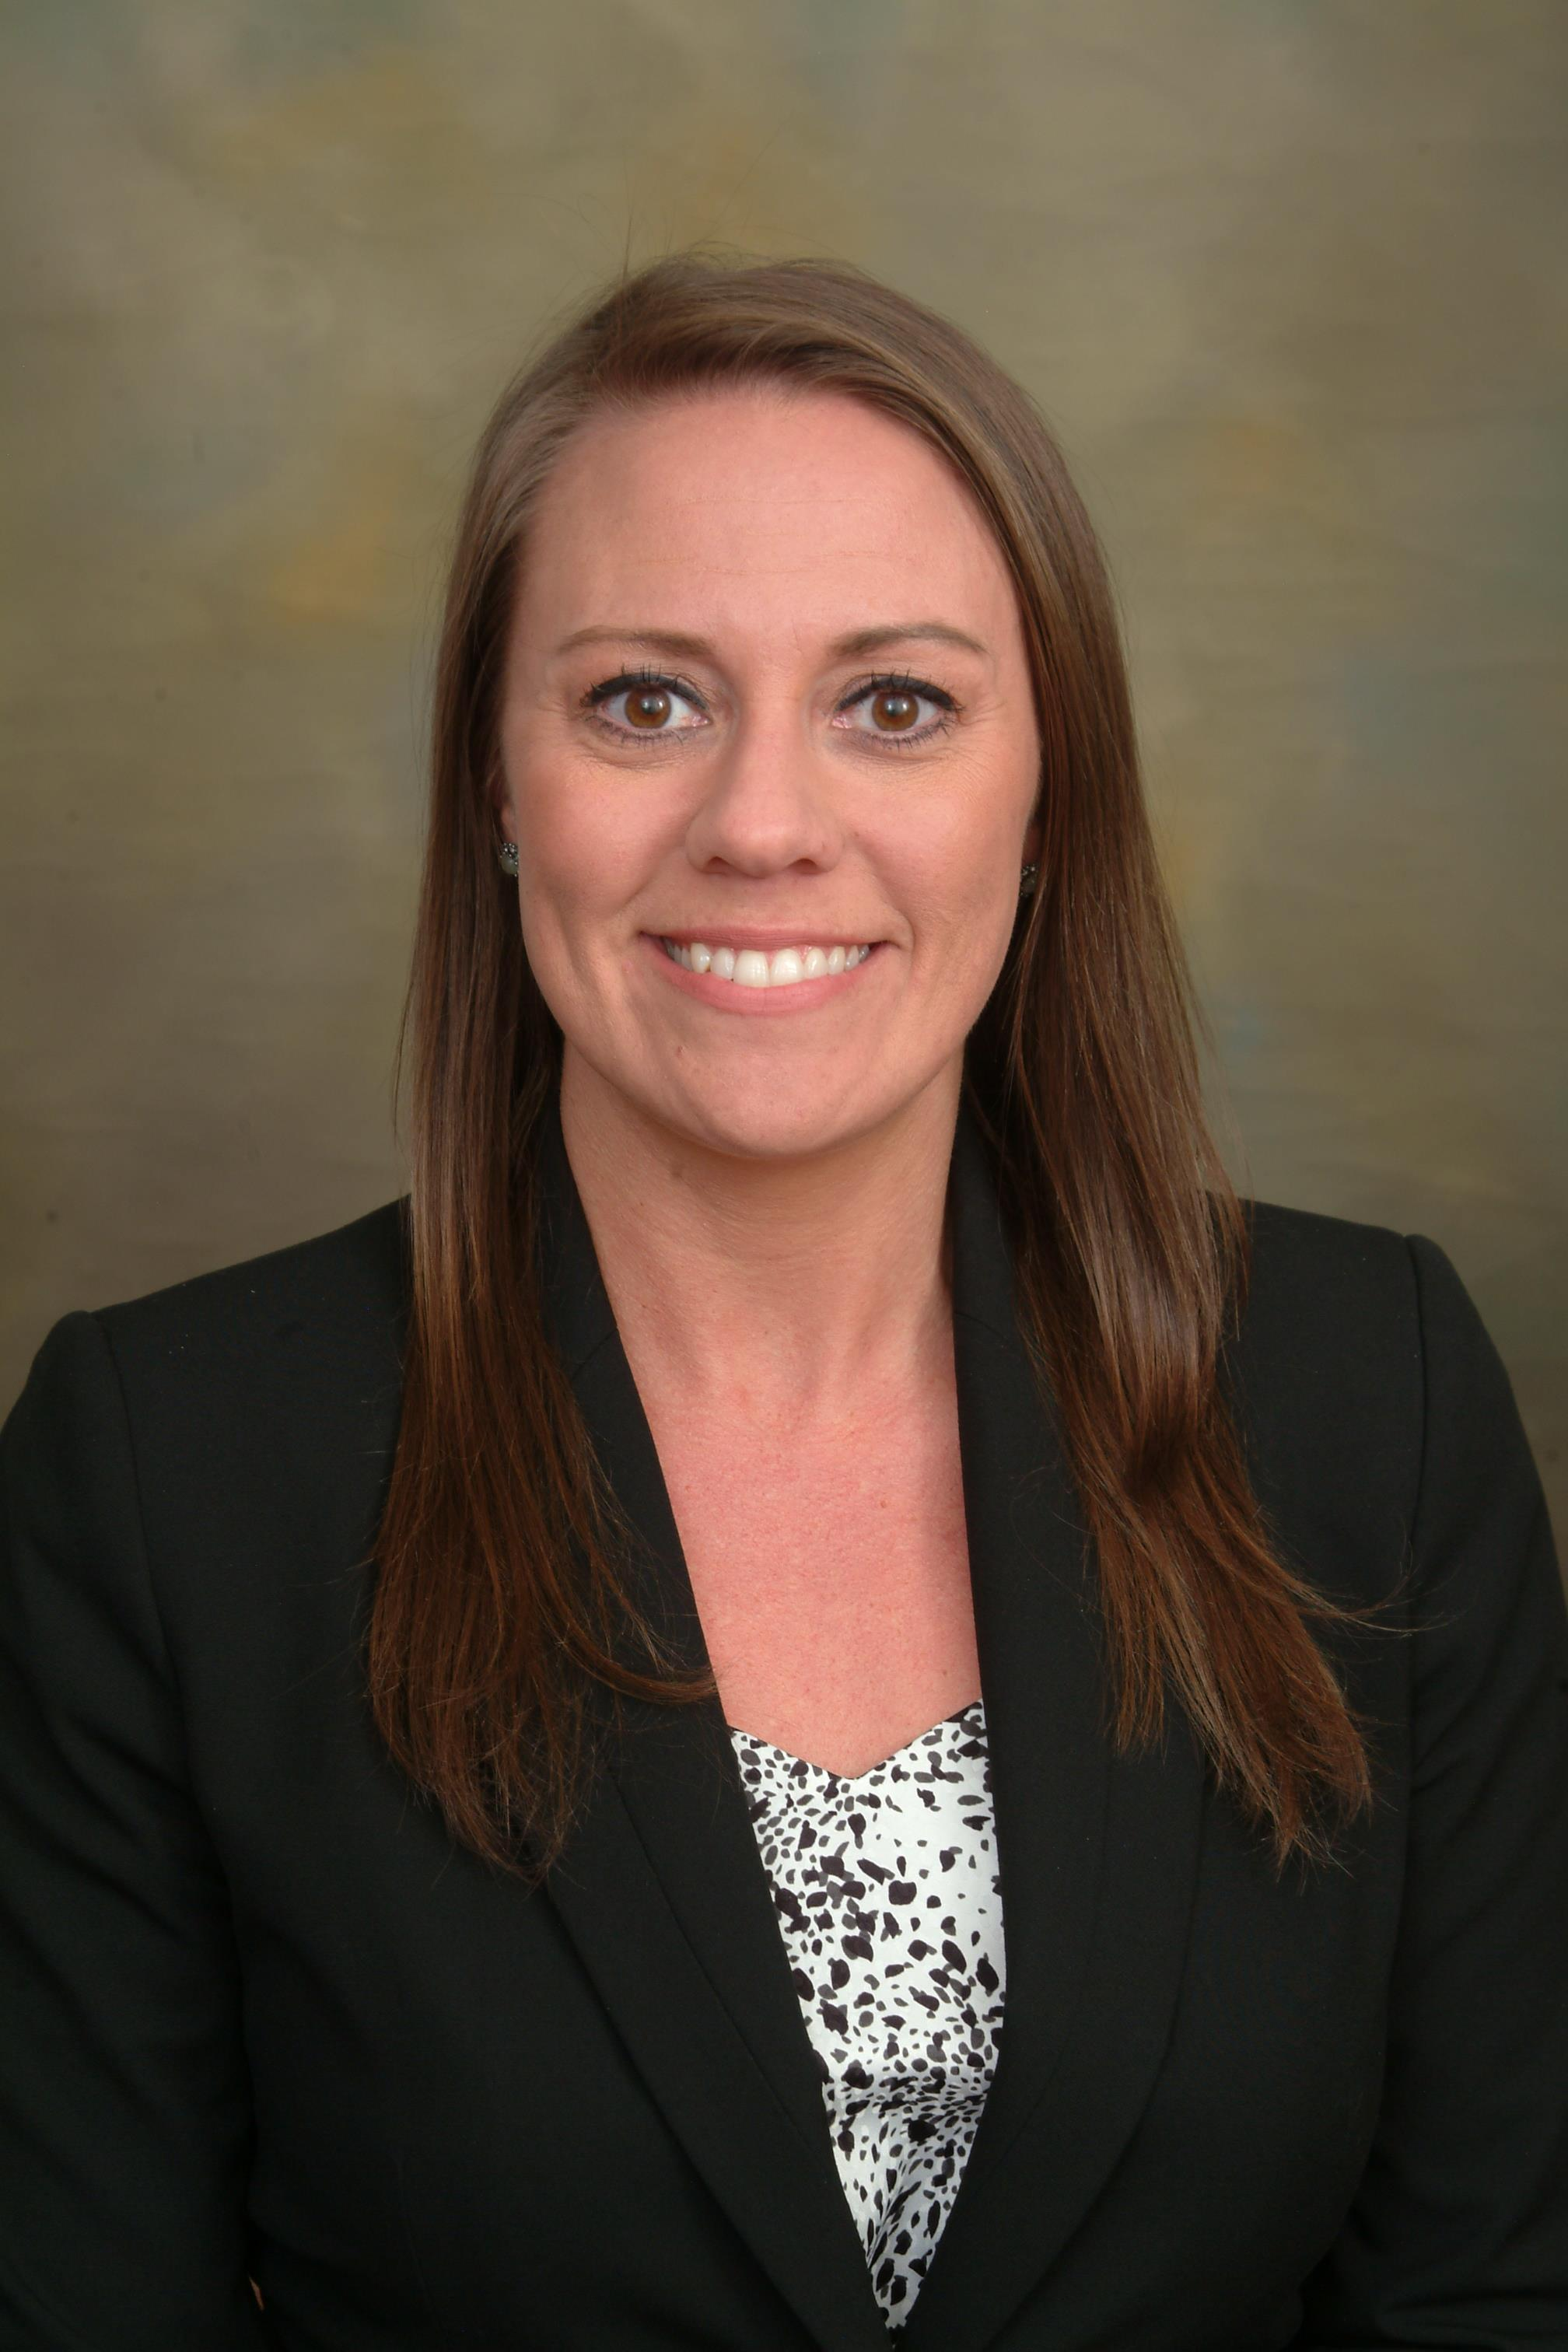 Heather Phillips, Trustmark National Bank